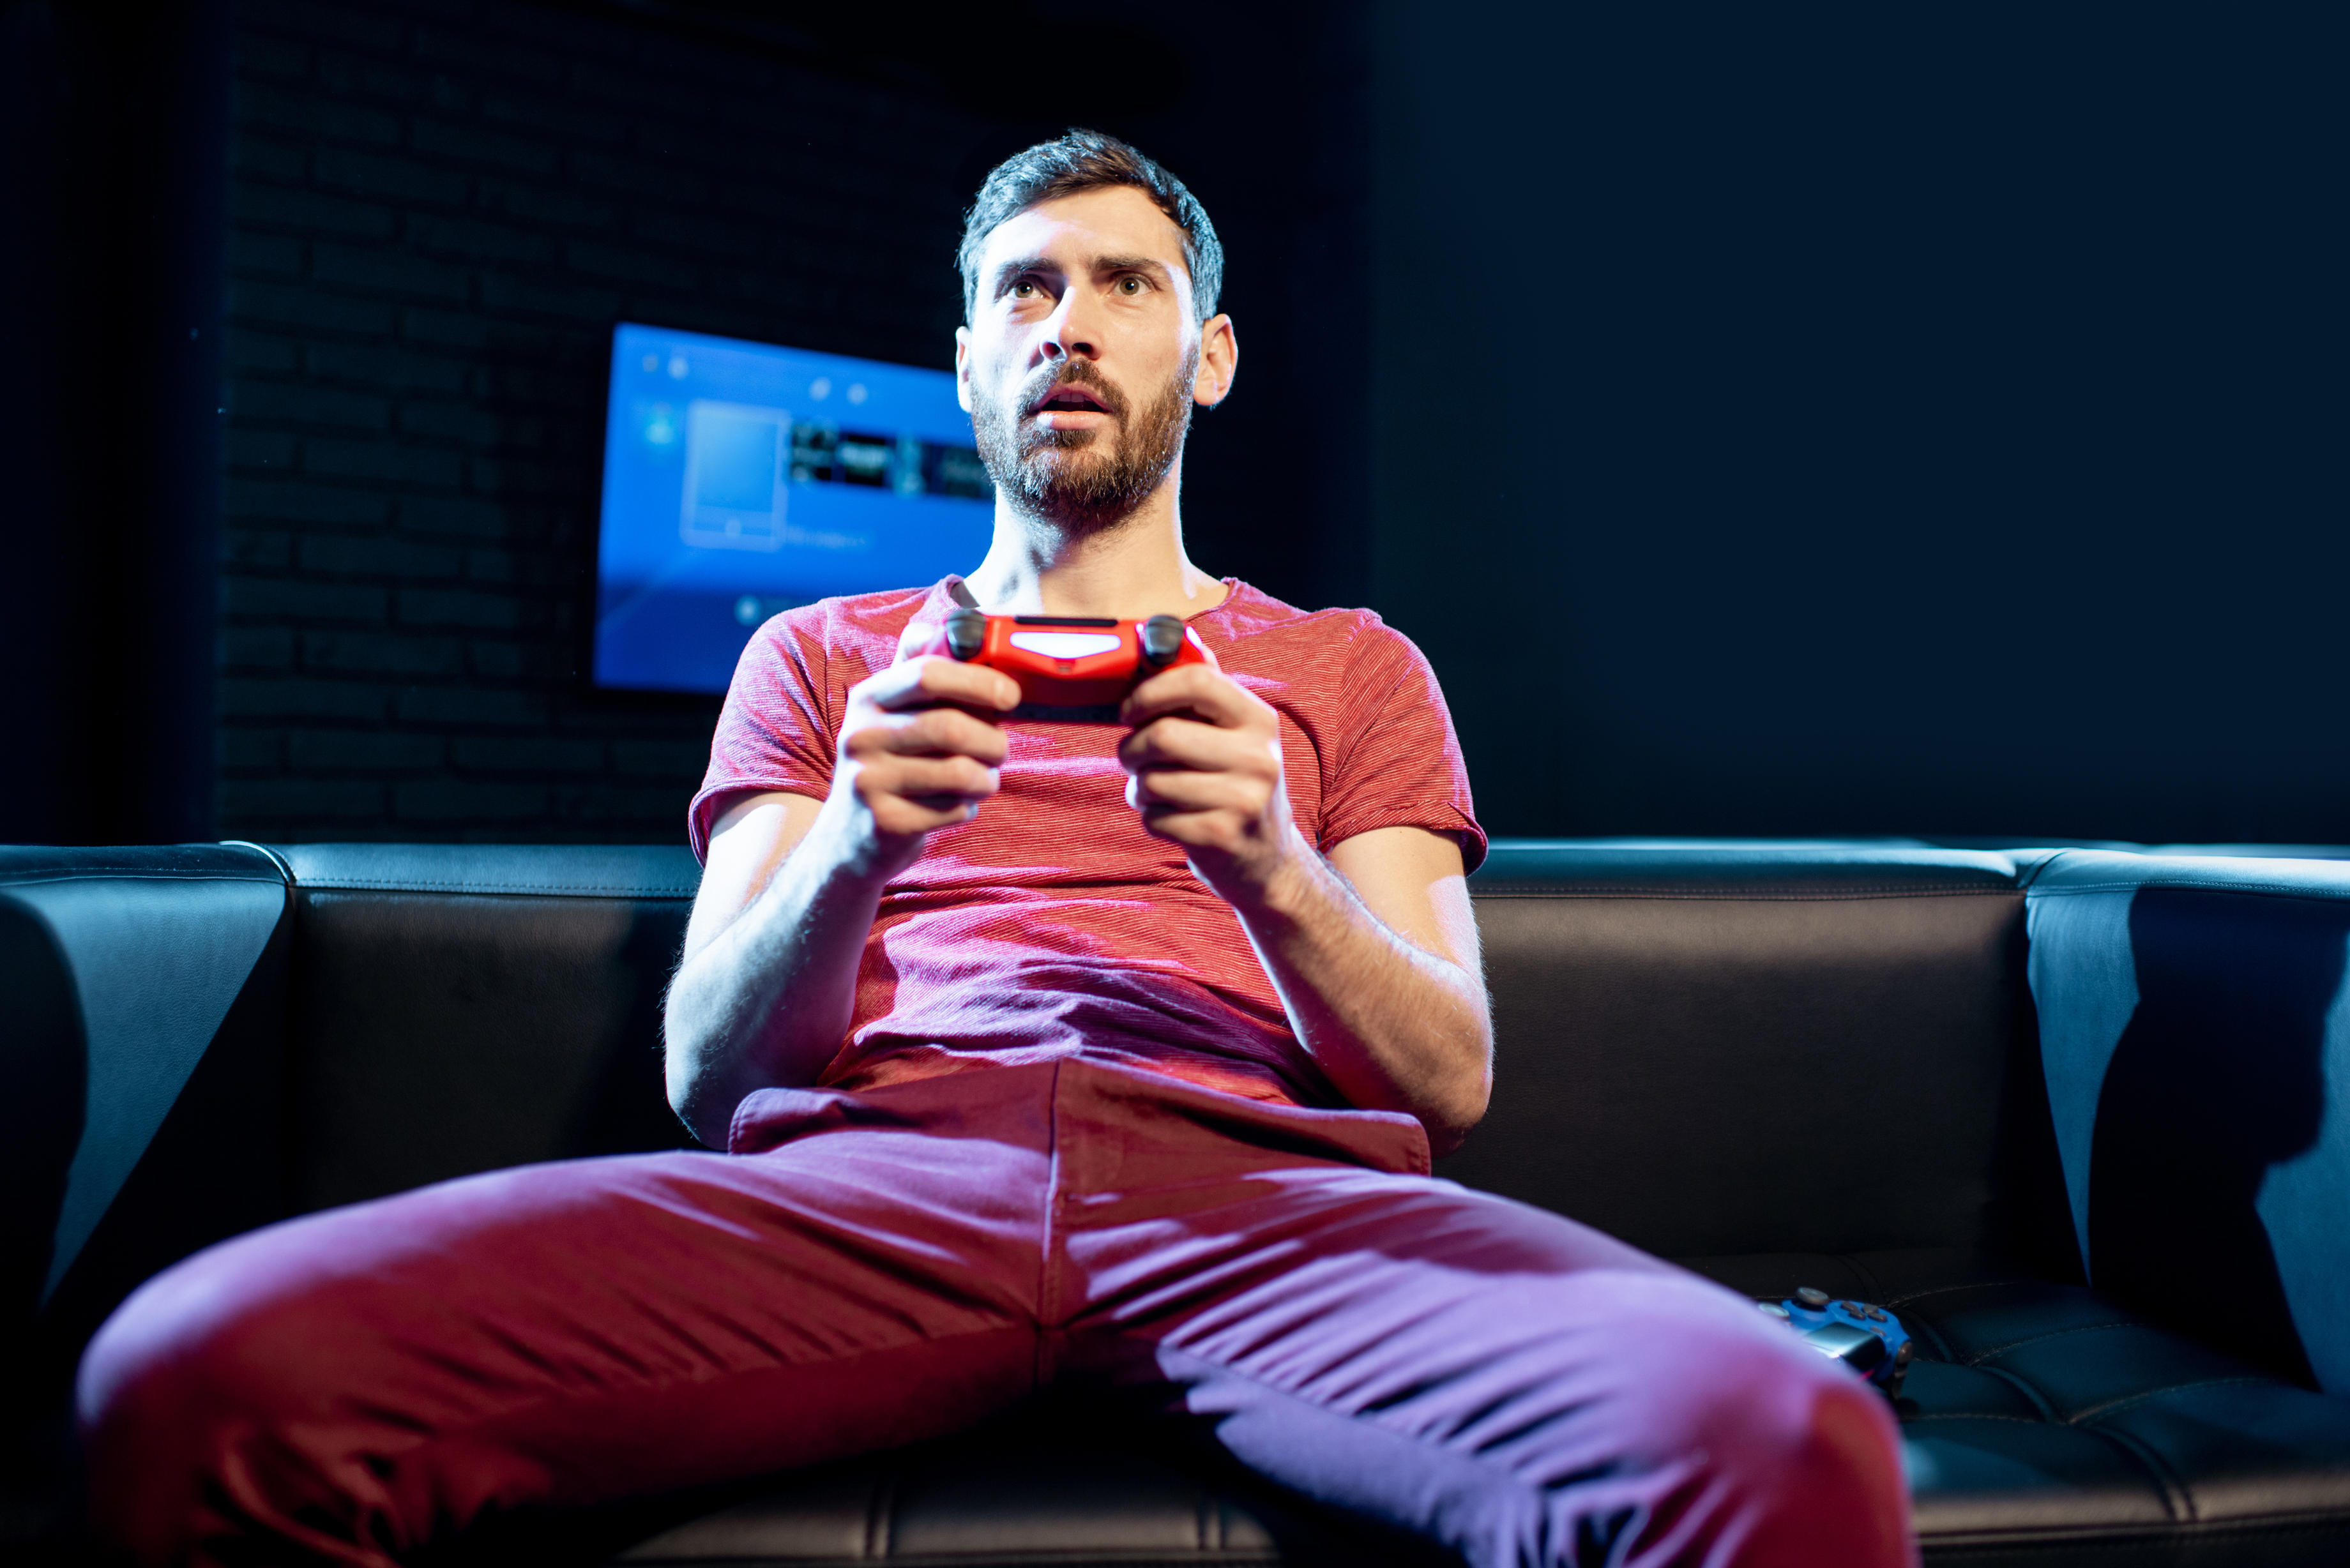 Most Canadian households have game consoles. Here are the pros and cons of using these gaming systems to stream TV.